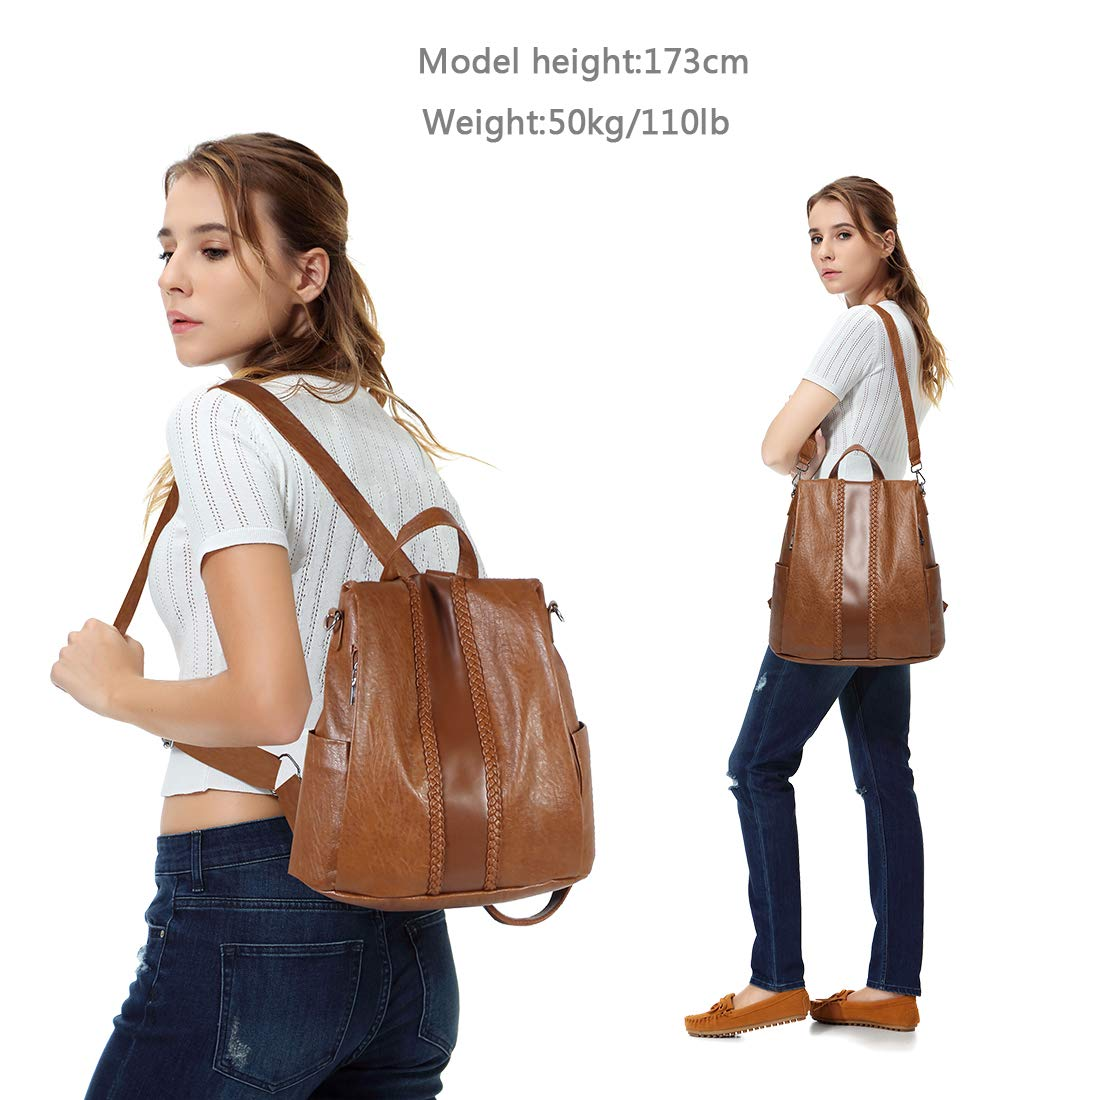 Backpack Purse for Women,VASCHY Fashion Faux Leather Convertible Anti-theft Backpack for Ladies with Vintage Weave Brown by VASCHY (Image #2)